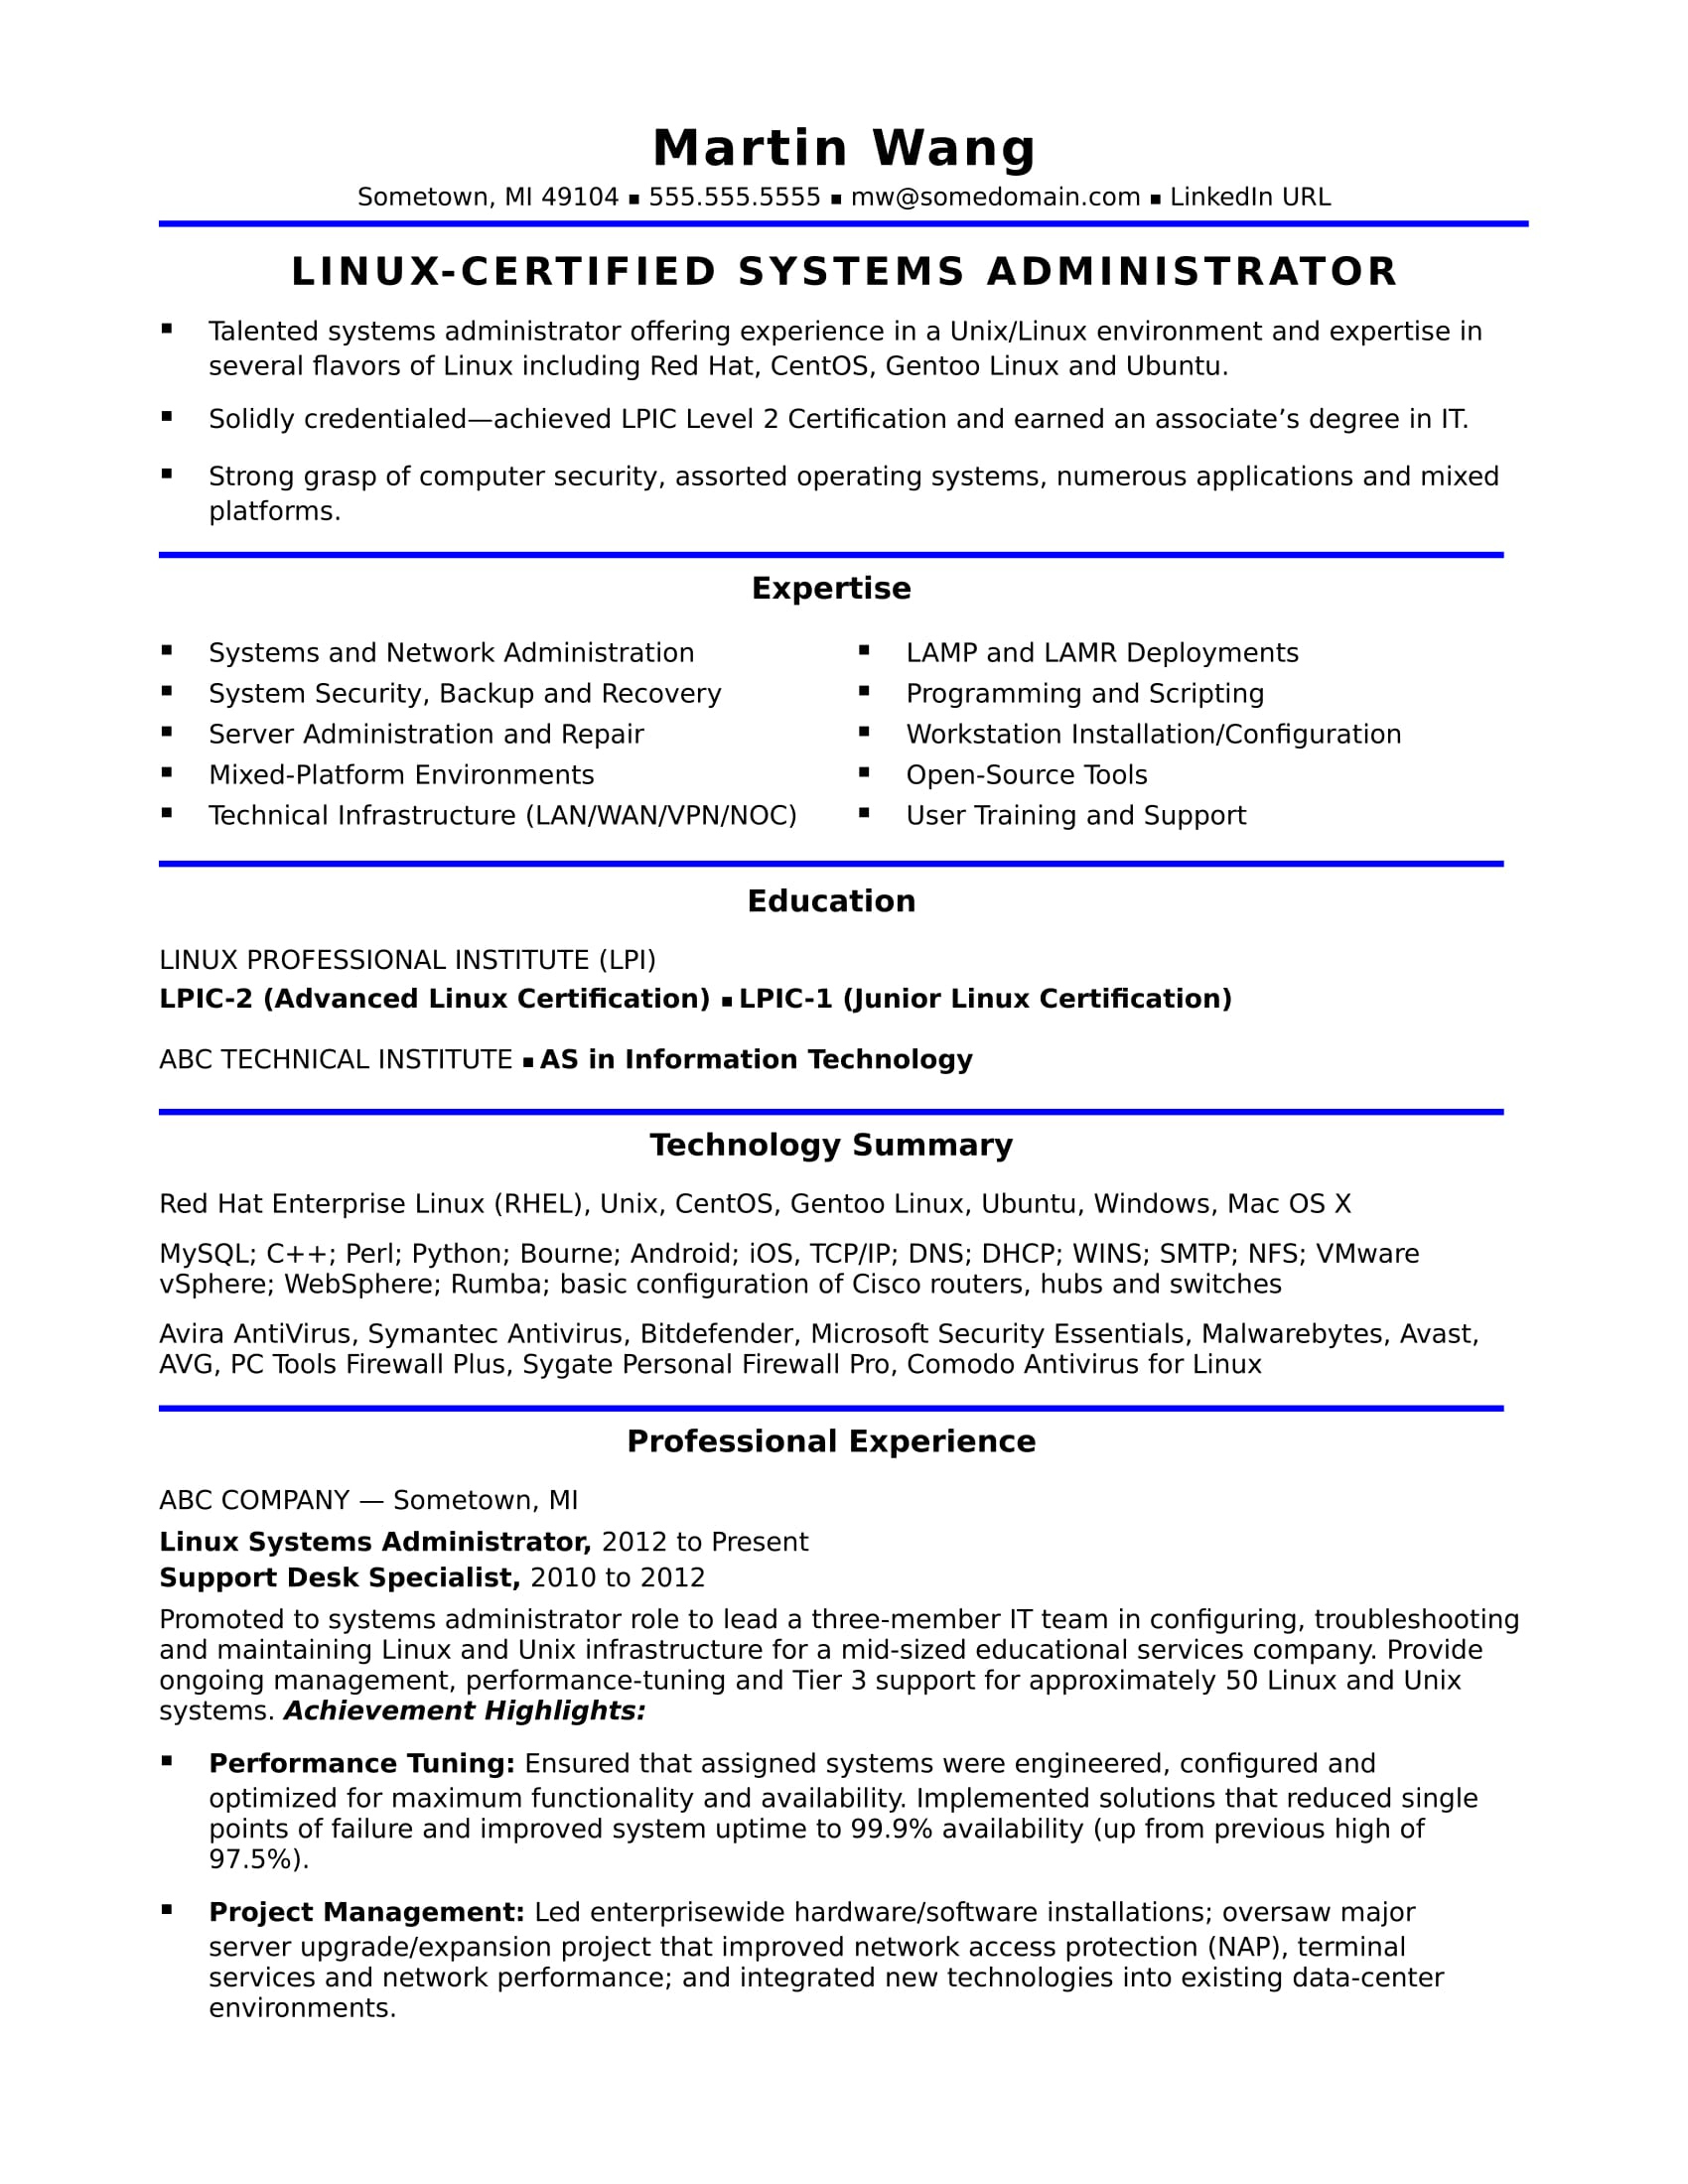 Sample Resume for a Midlevel Systems Administrator Monstercom